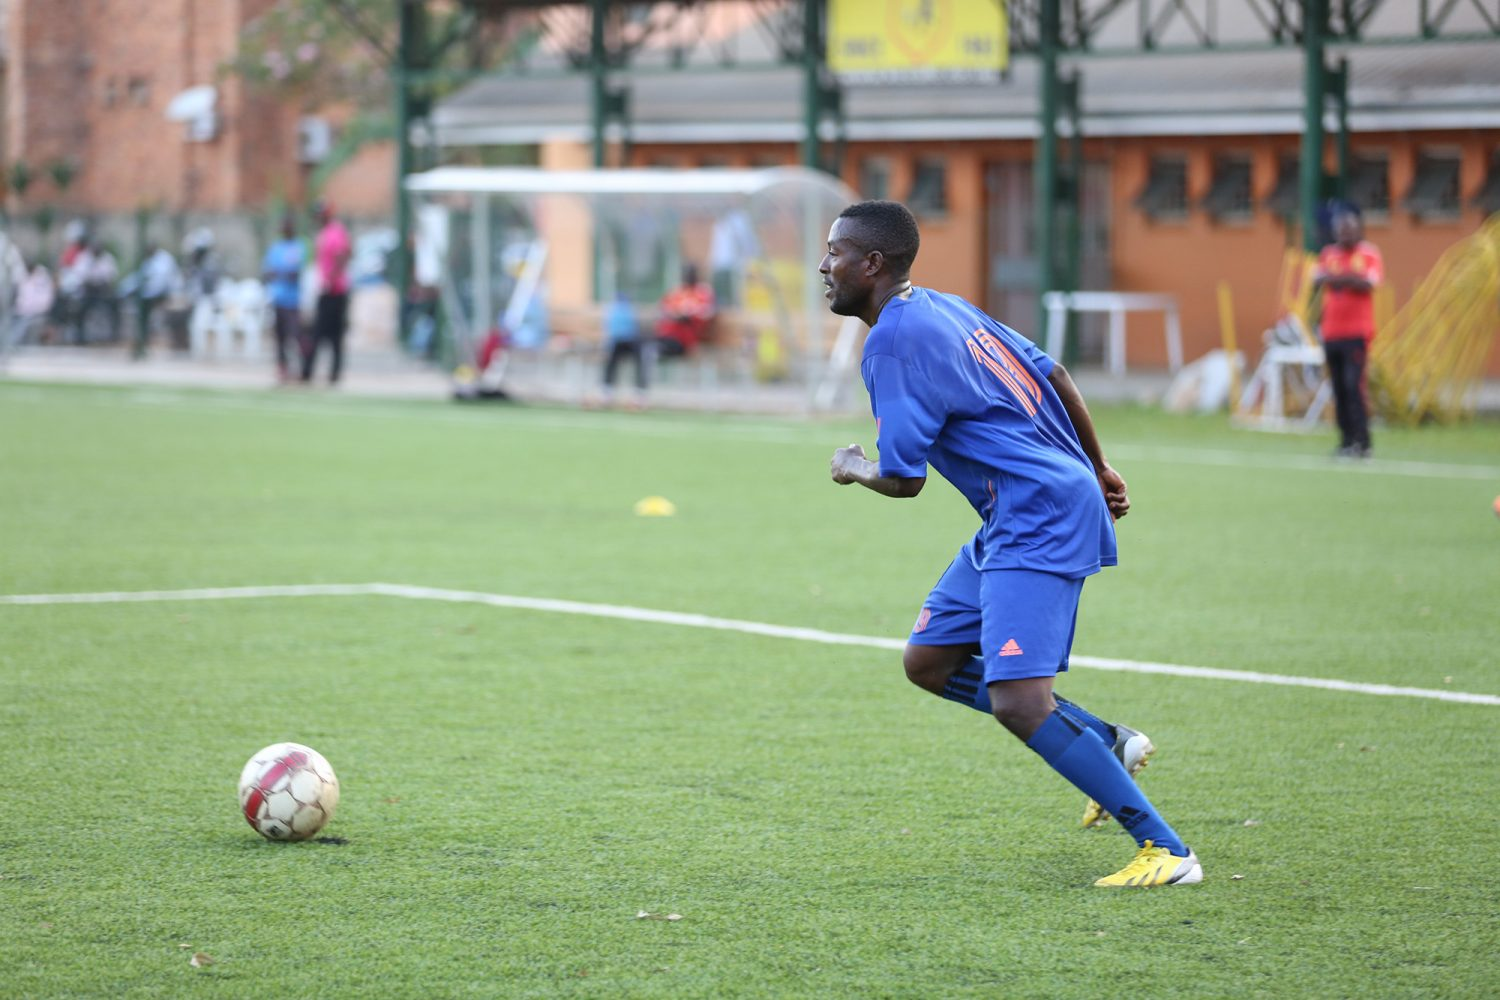 KCCA FC midfielder Brian Majwega during training at the Philip Omondi Stadium in Lugogo, he will be a vital figure for KCCA FC in the second round of the season